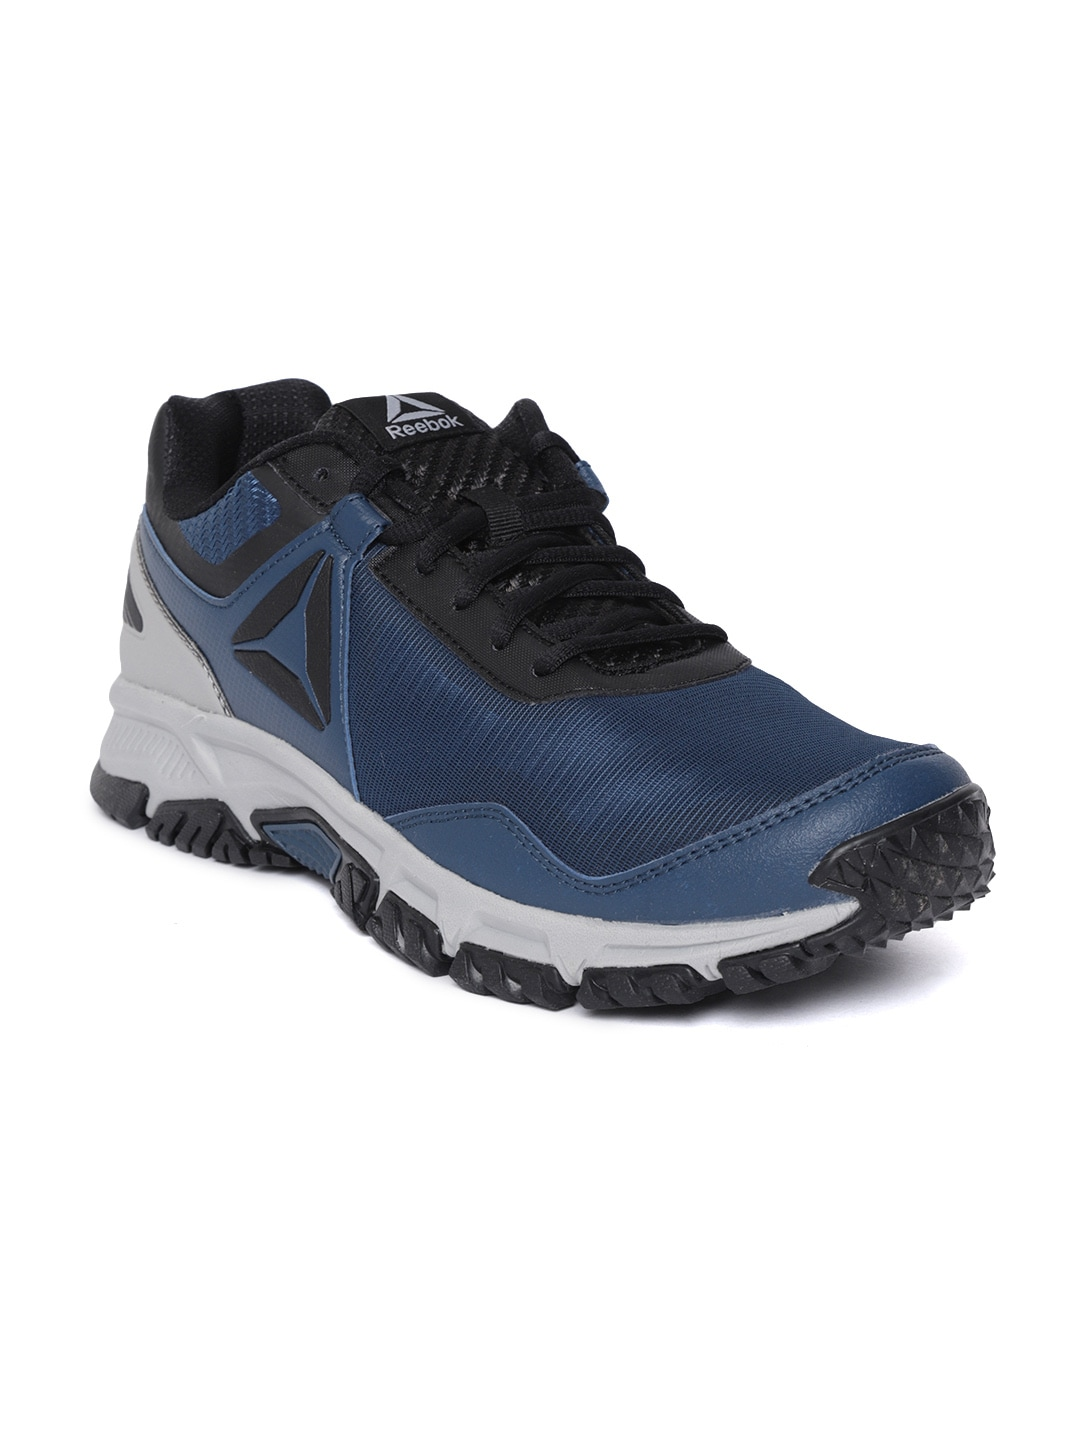 Reebok Trail Sports Shoes - Buy Reebok Trail Sports Shoes online in India a7df4131e